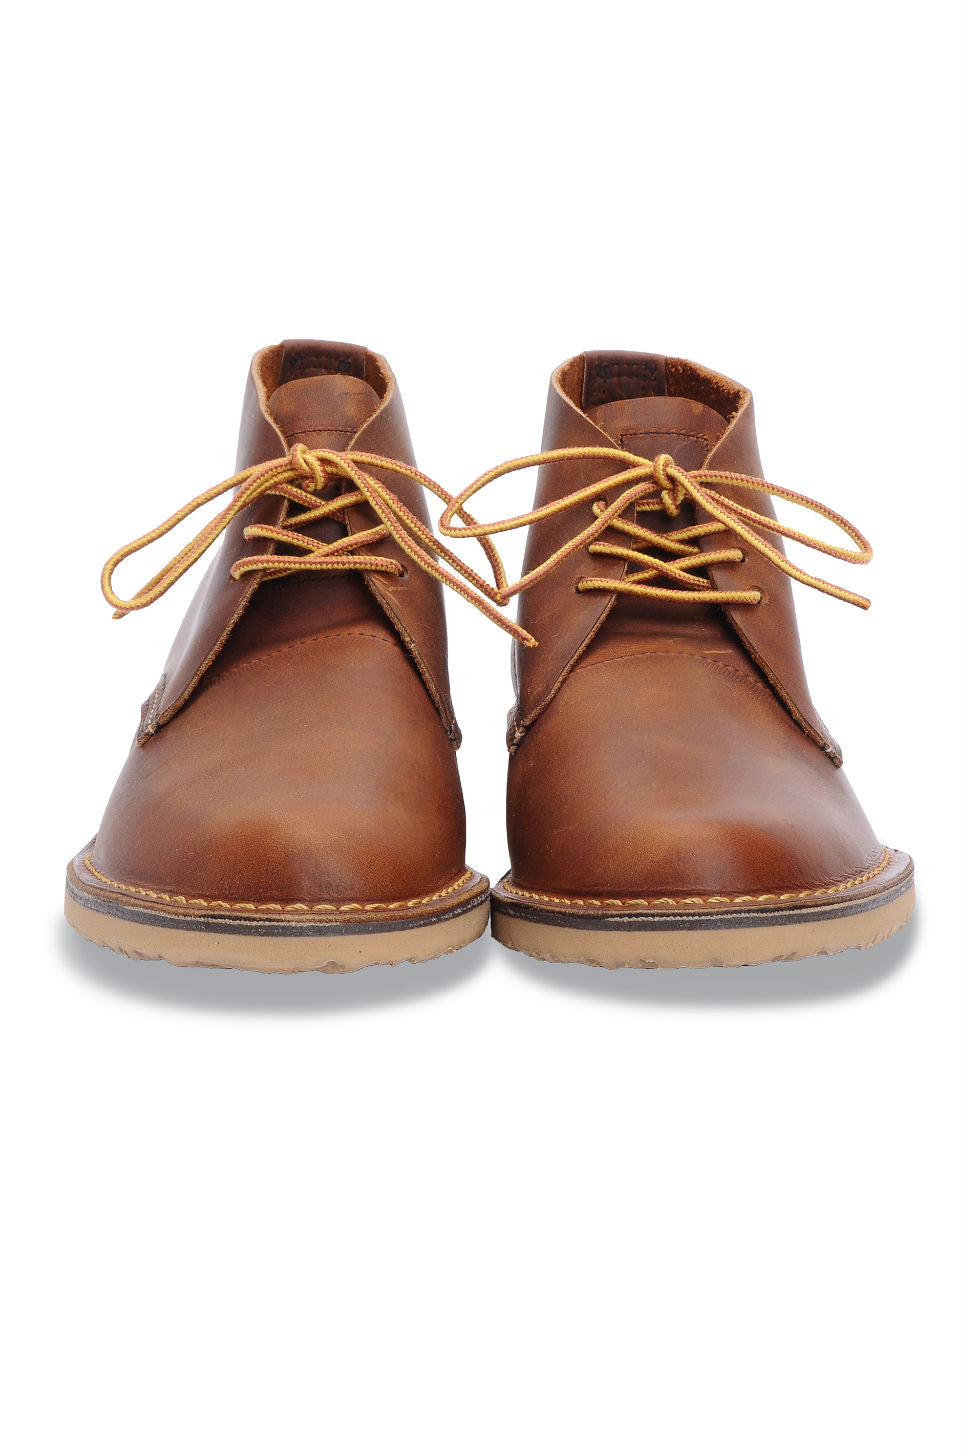 Red Wing Heritage - Weekender Chukka - Copper - Front